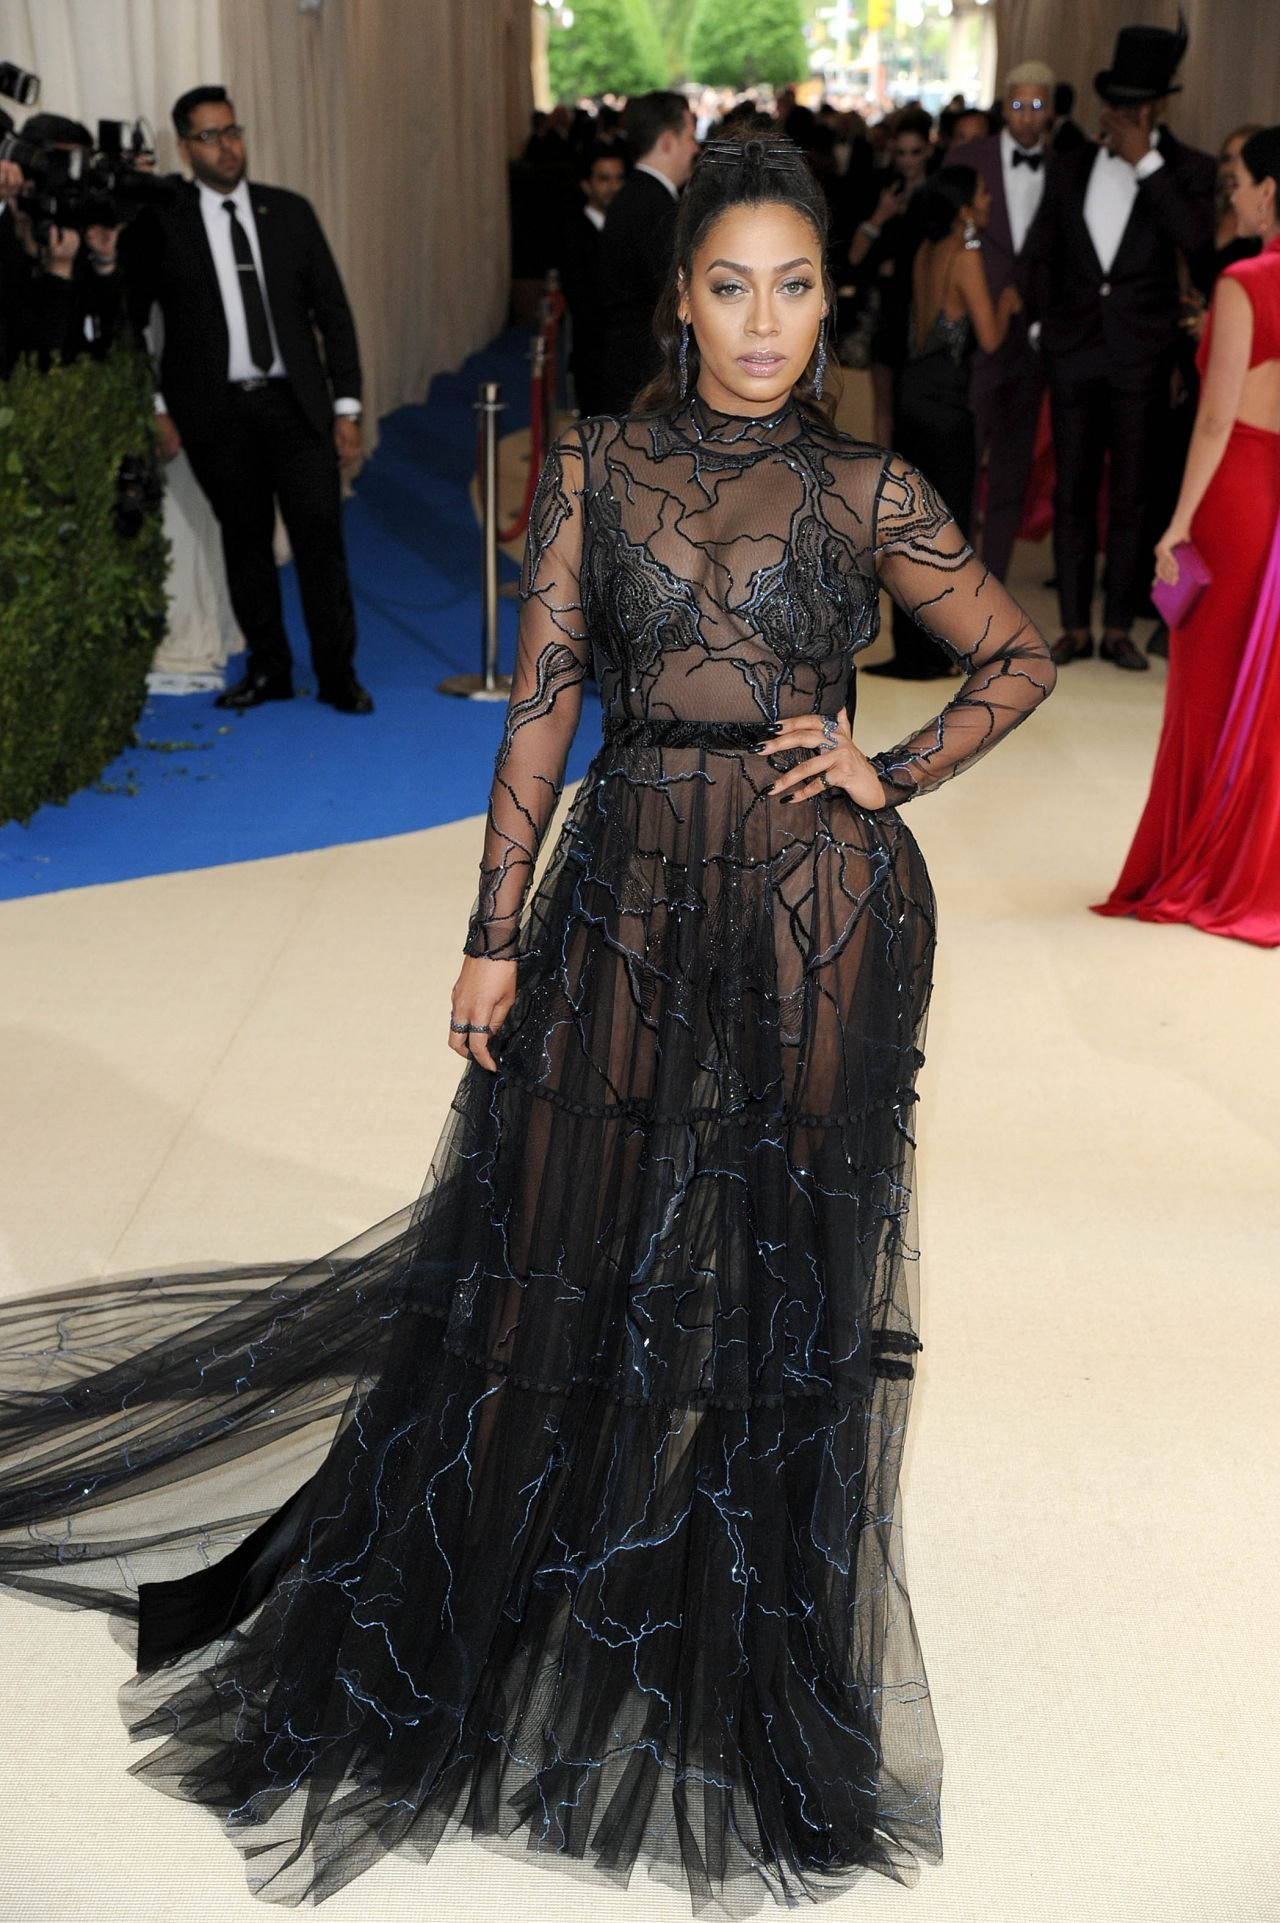 The Best La La Anthony At Met Gala In New York 05 01 2017 Pictures